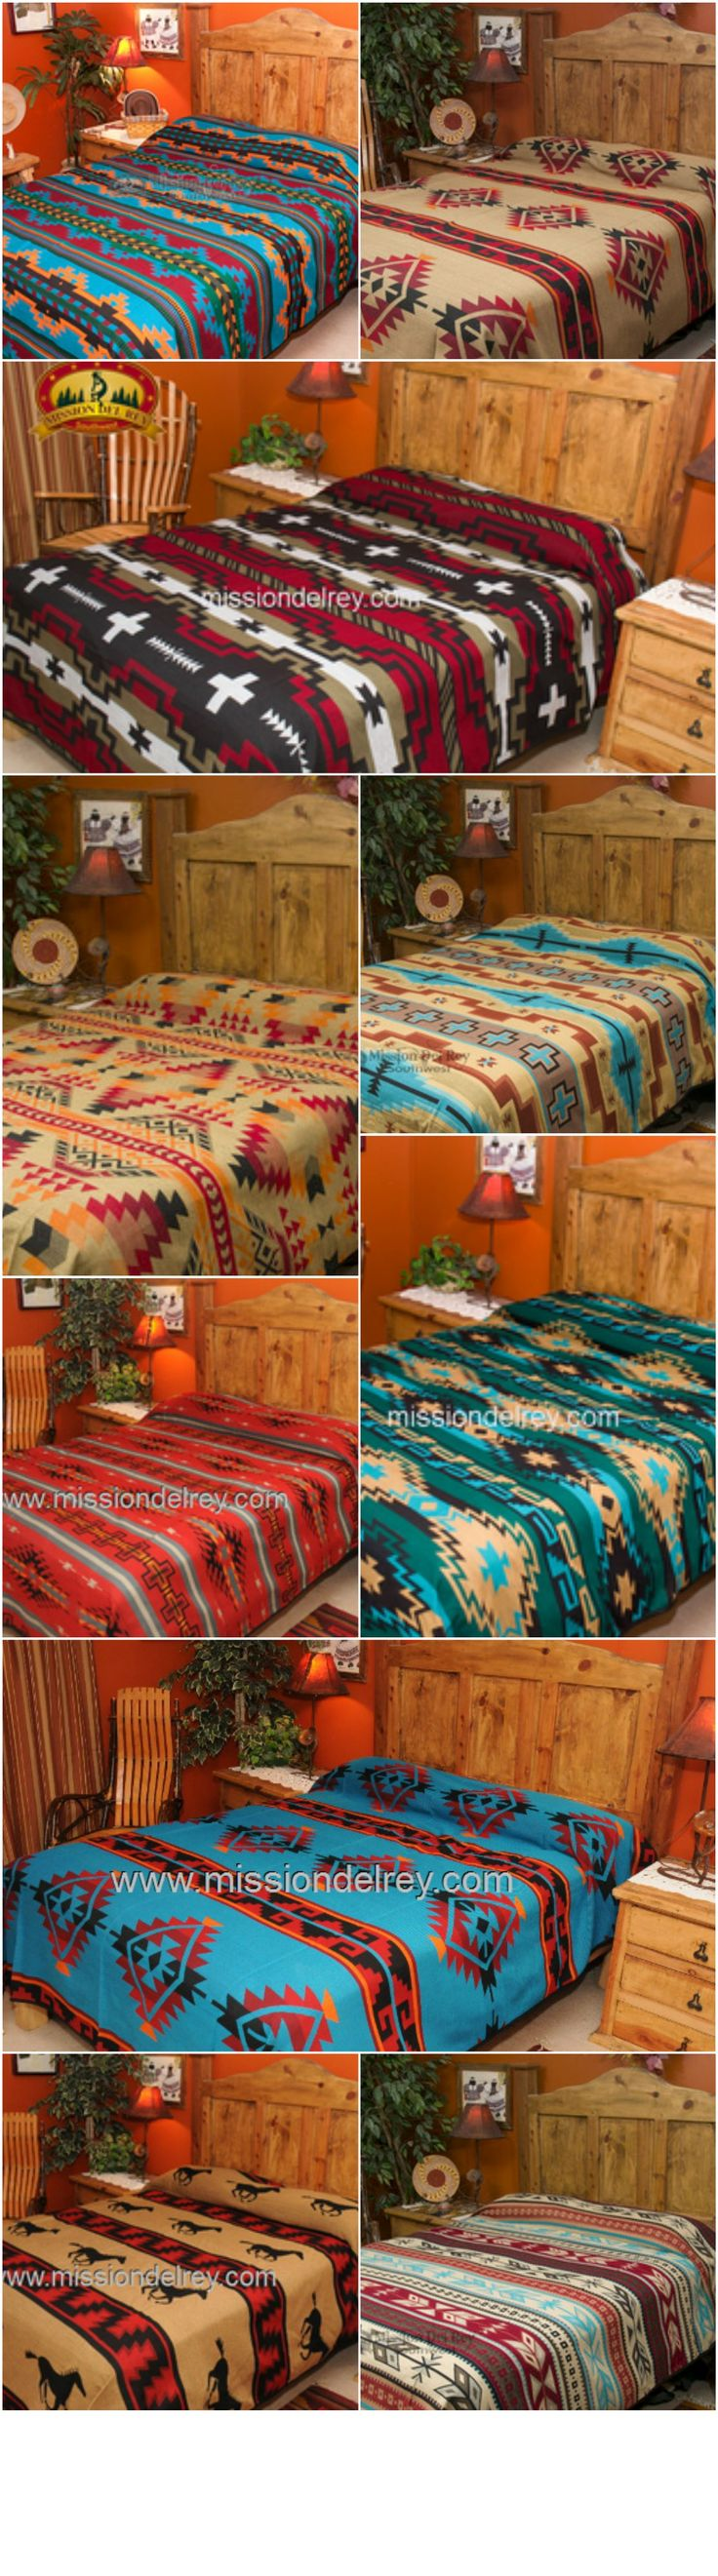 Get your home ready to welcome family and friends this holiday season with our beautiful southwestern bedspreads and western bedding collection! Our popular bedspreads are fully reversible, and come in TWIN, QUEEN, and KING size. Choose from a wide variety of designs and colors to match your decor and color scheme. See more of our fabulous southwest and western bedding at http://www.missiondelrey.com/southwestern-bedspreads/